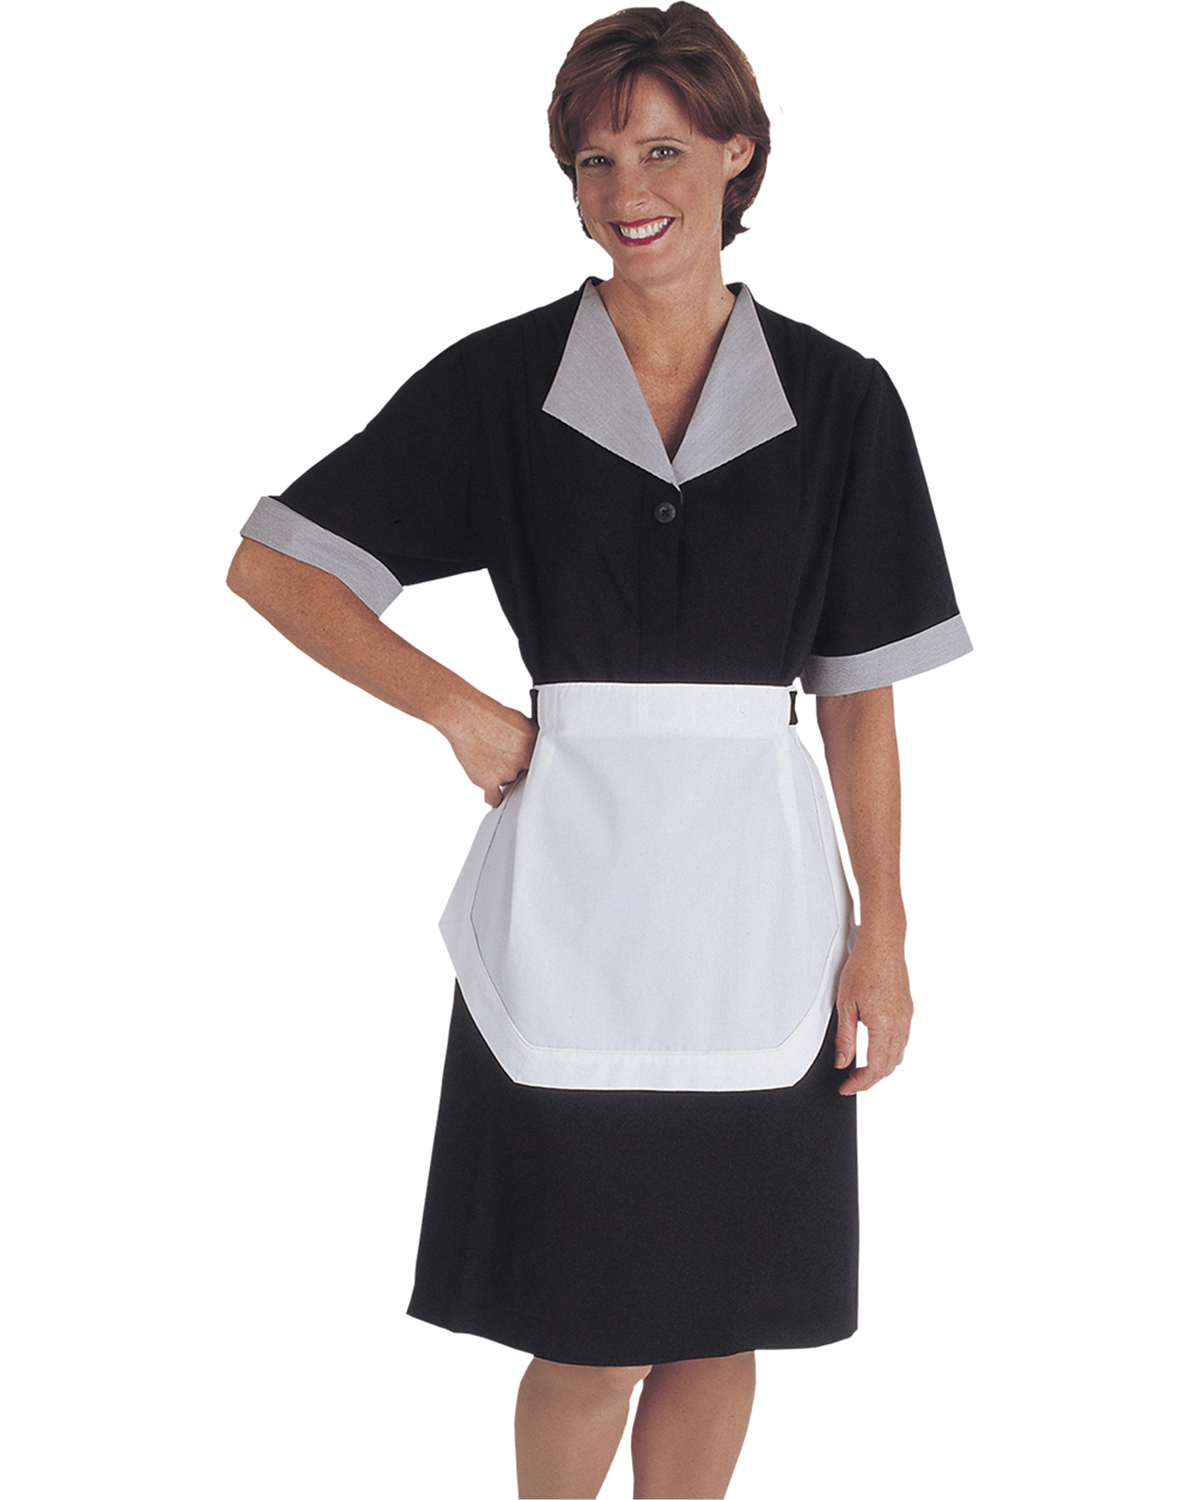 Edwards 9896 Women's Spun Polyester Housekeeping Dress at GotApparel